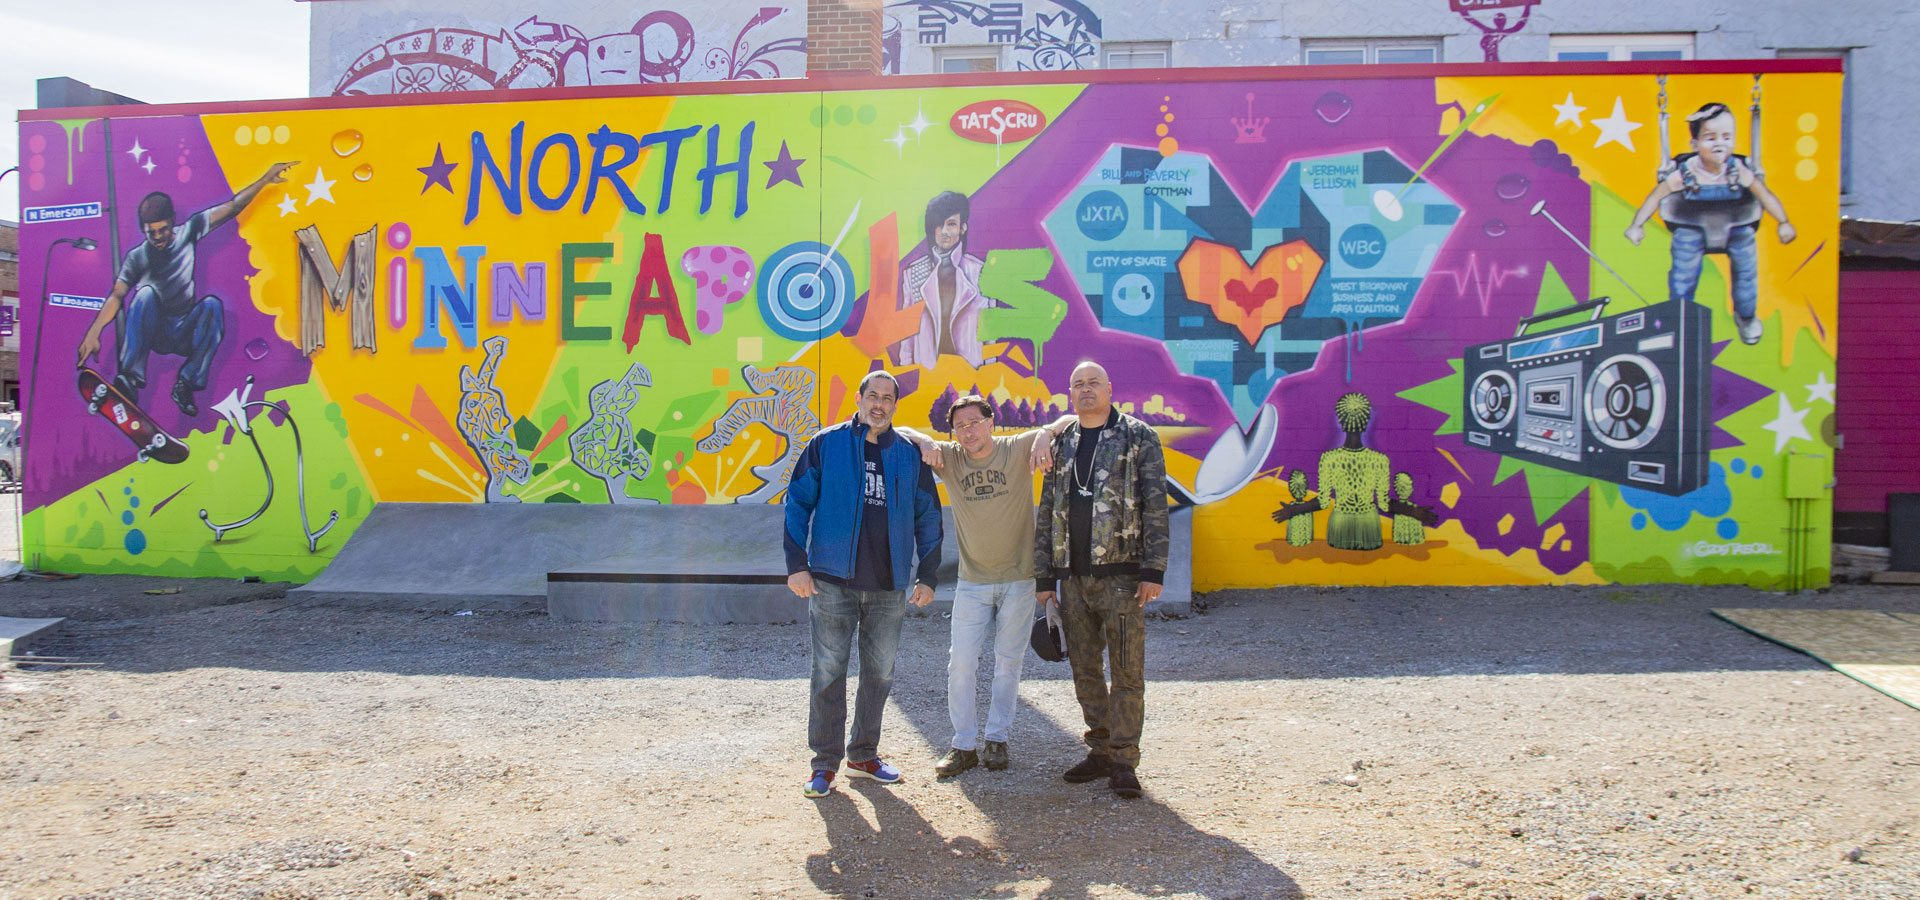 Three people standing in front of a colorful mural with several images and the words North Minneapolis